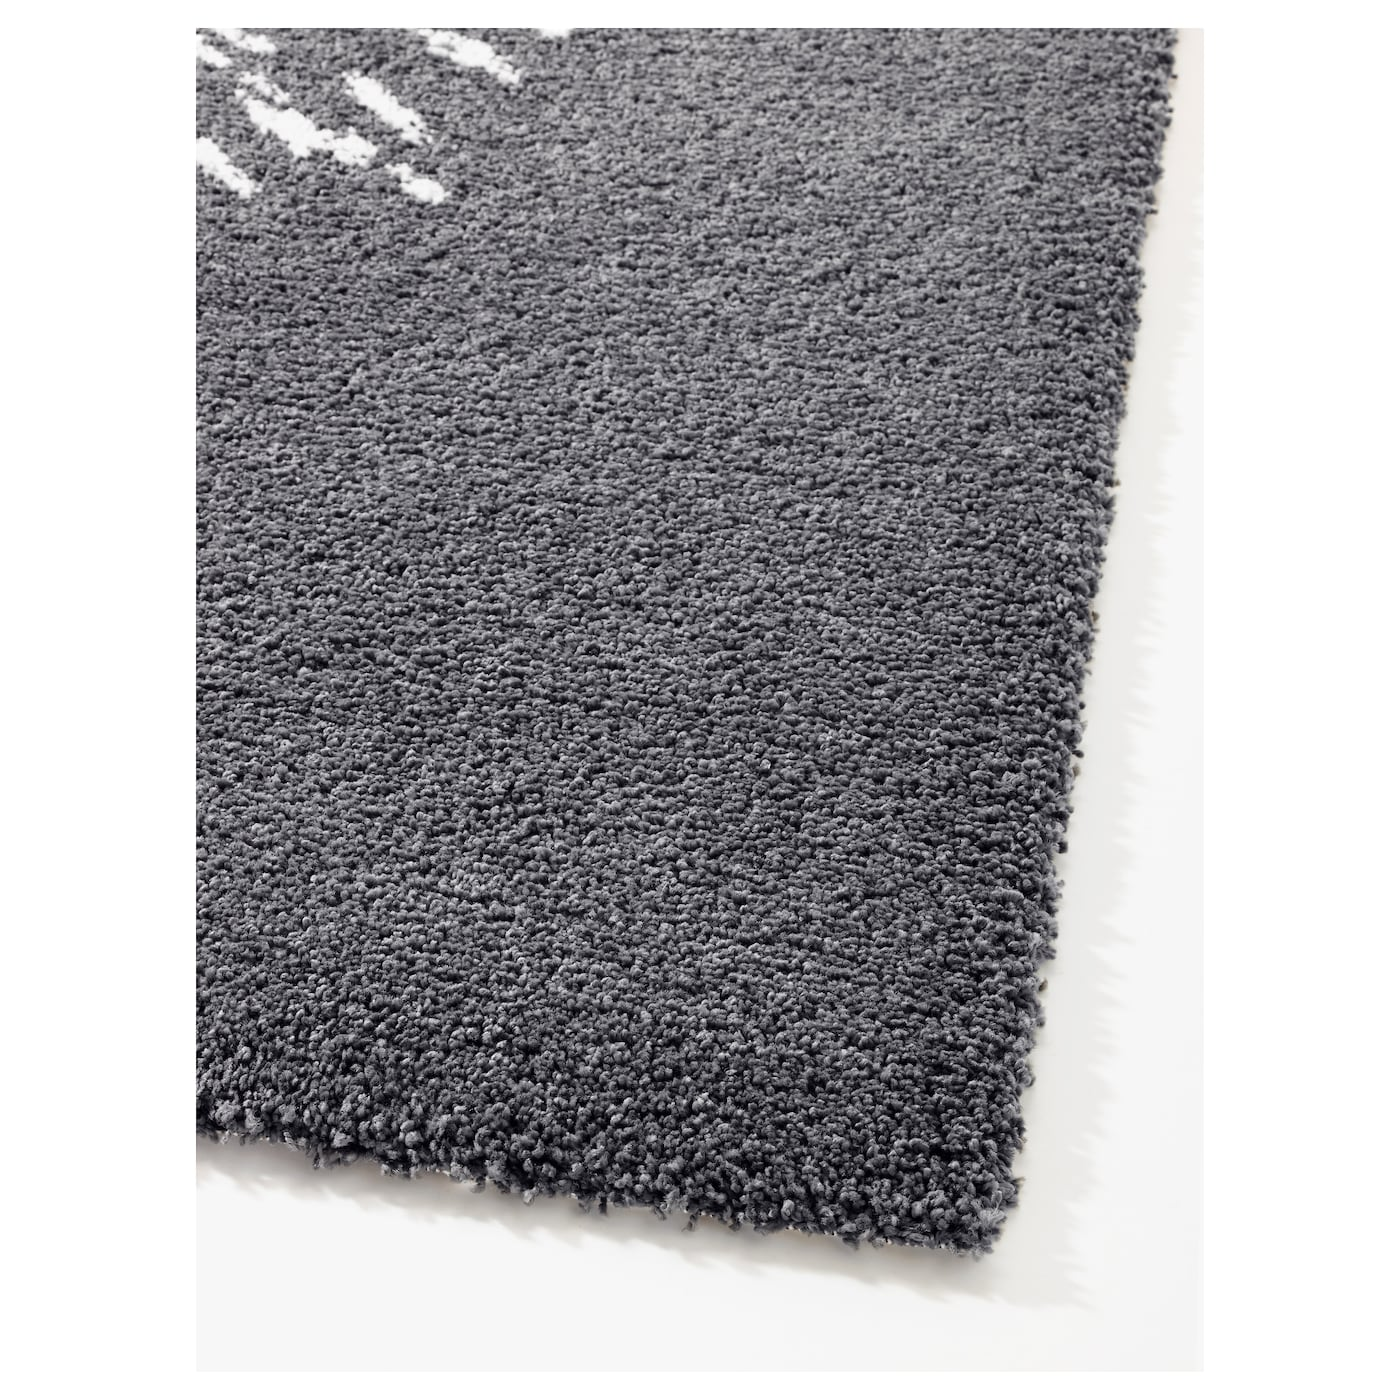 IKEA SANDERUM rug, high pile